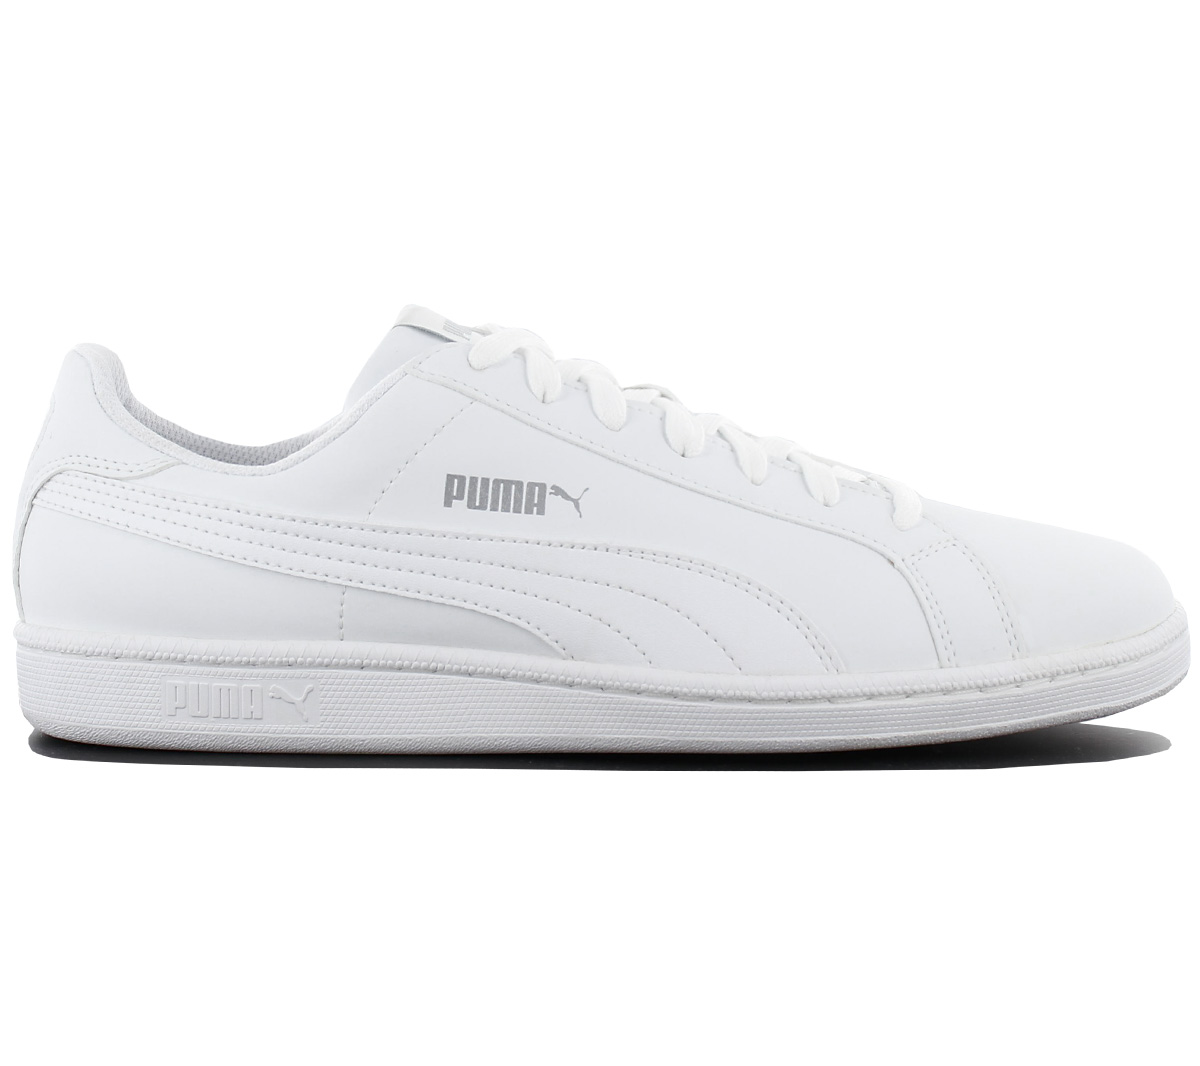 Puma Smash Buck Men s Sneakers Shoes Leisure White Sneakers 356753 ... 96b81a035